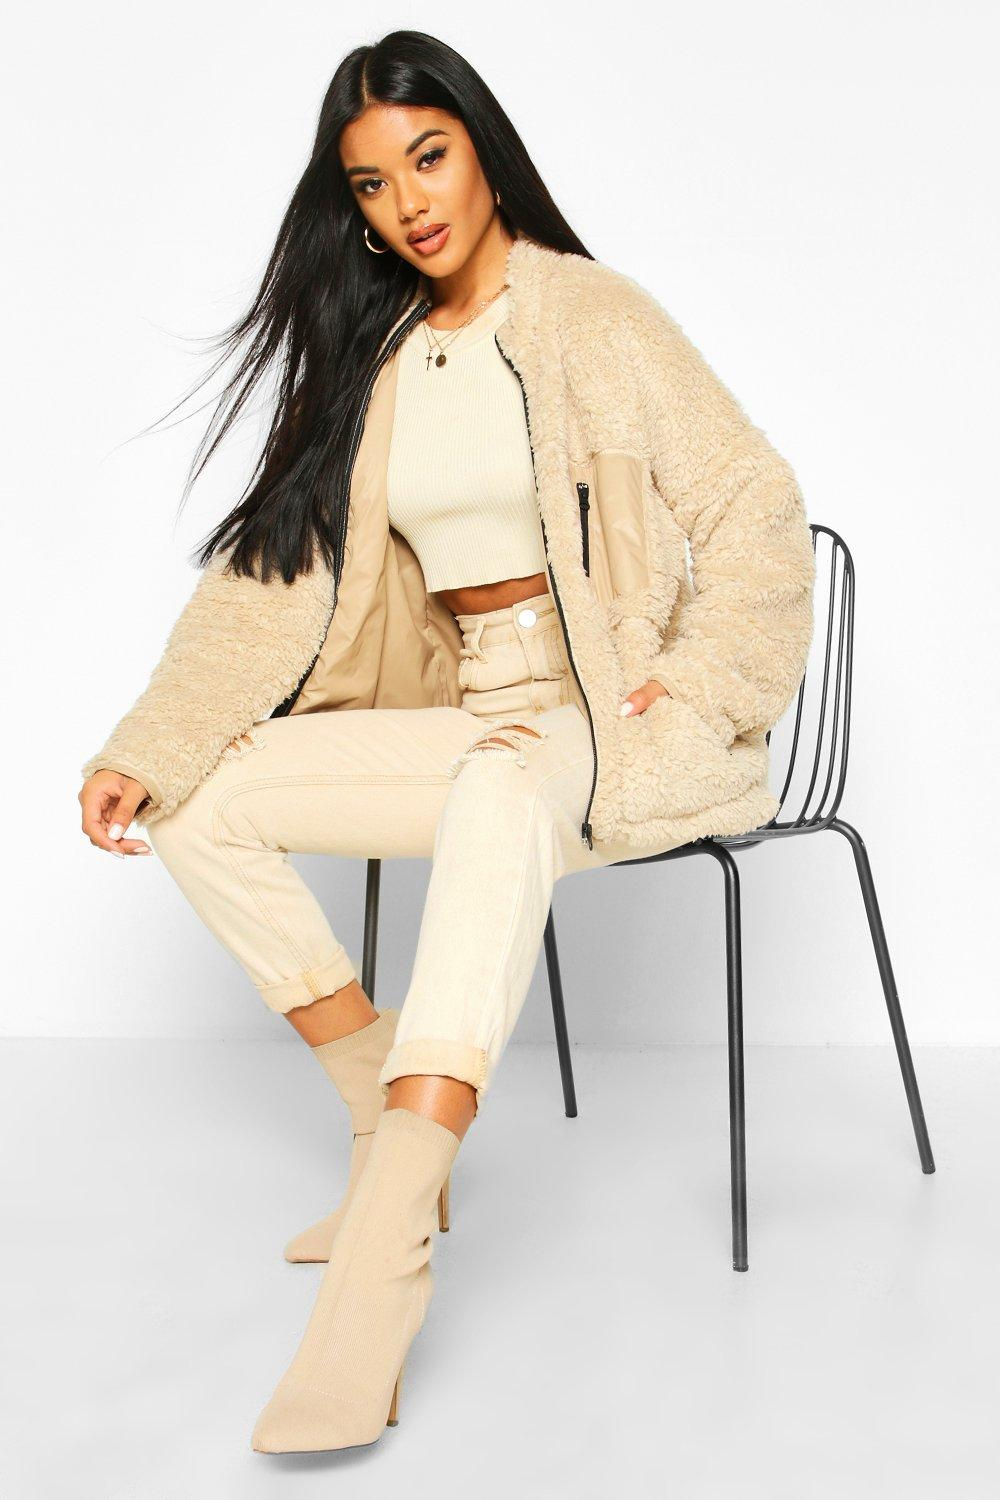 boohoo Womens Pocket Detail Teddy Jacket - Beige - 14, Beige